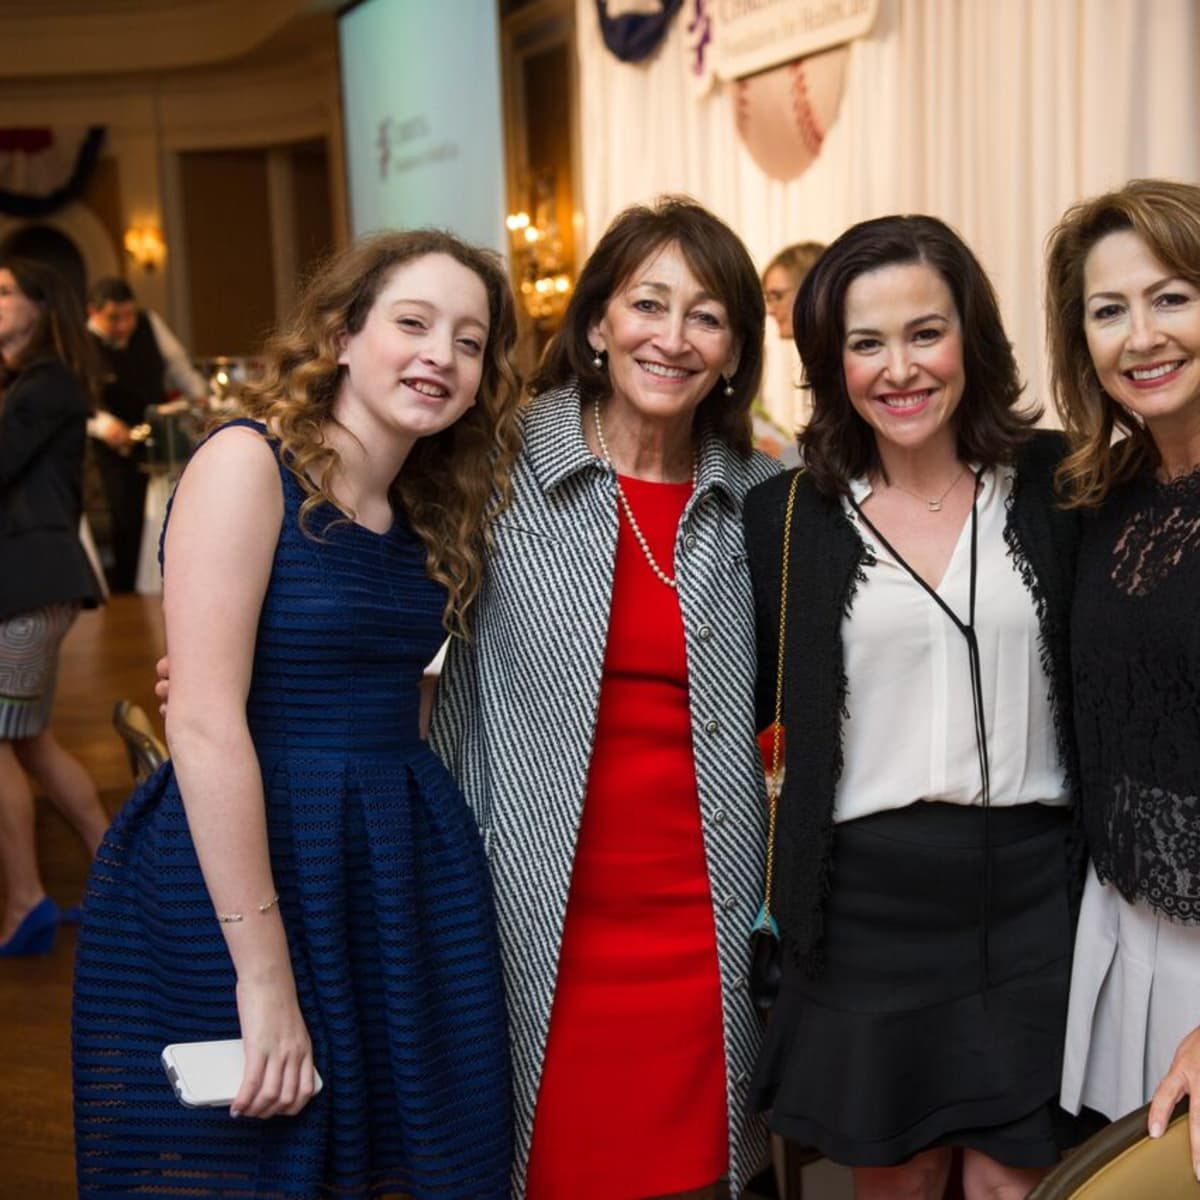 Christus Foundation Luncheon, March 2016, Catherine Roddey, Caroline Forney, Caroline Helander, Wendy Roddy